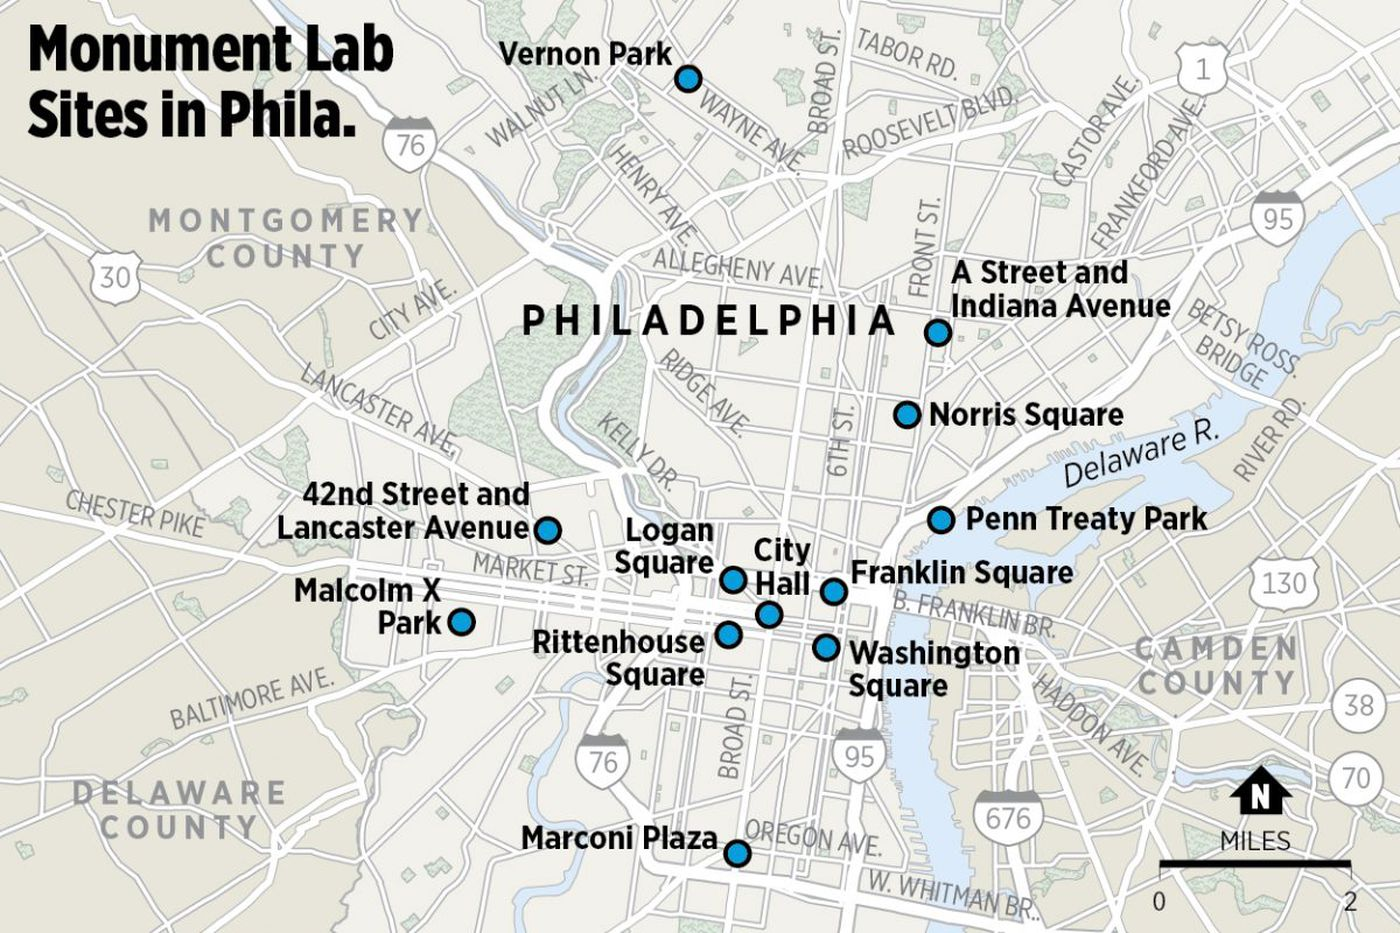 Here's where to see all the Monument Lab monuments